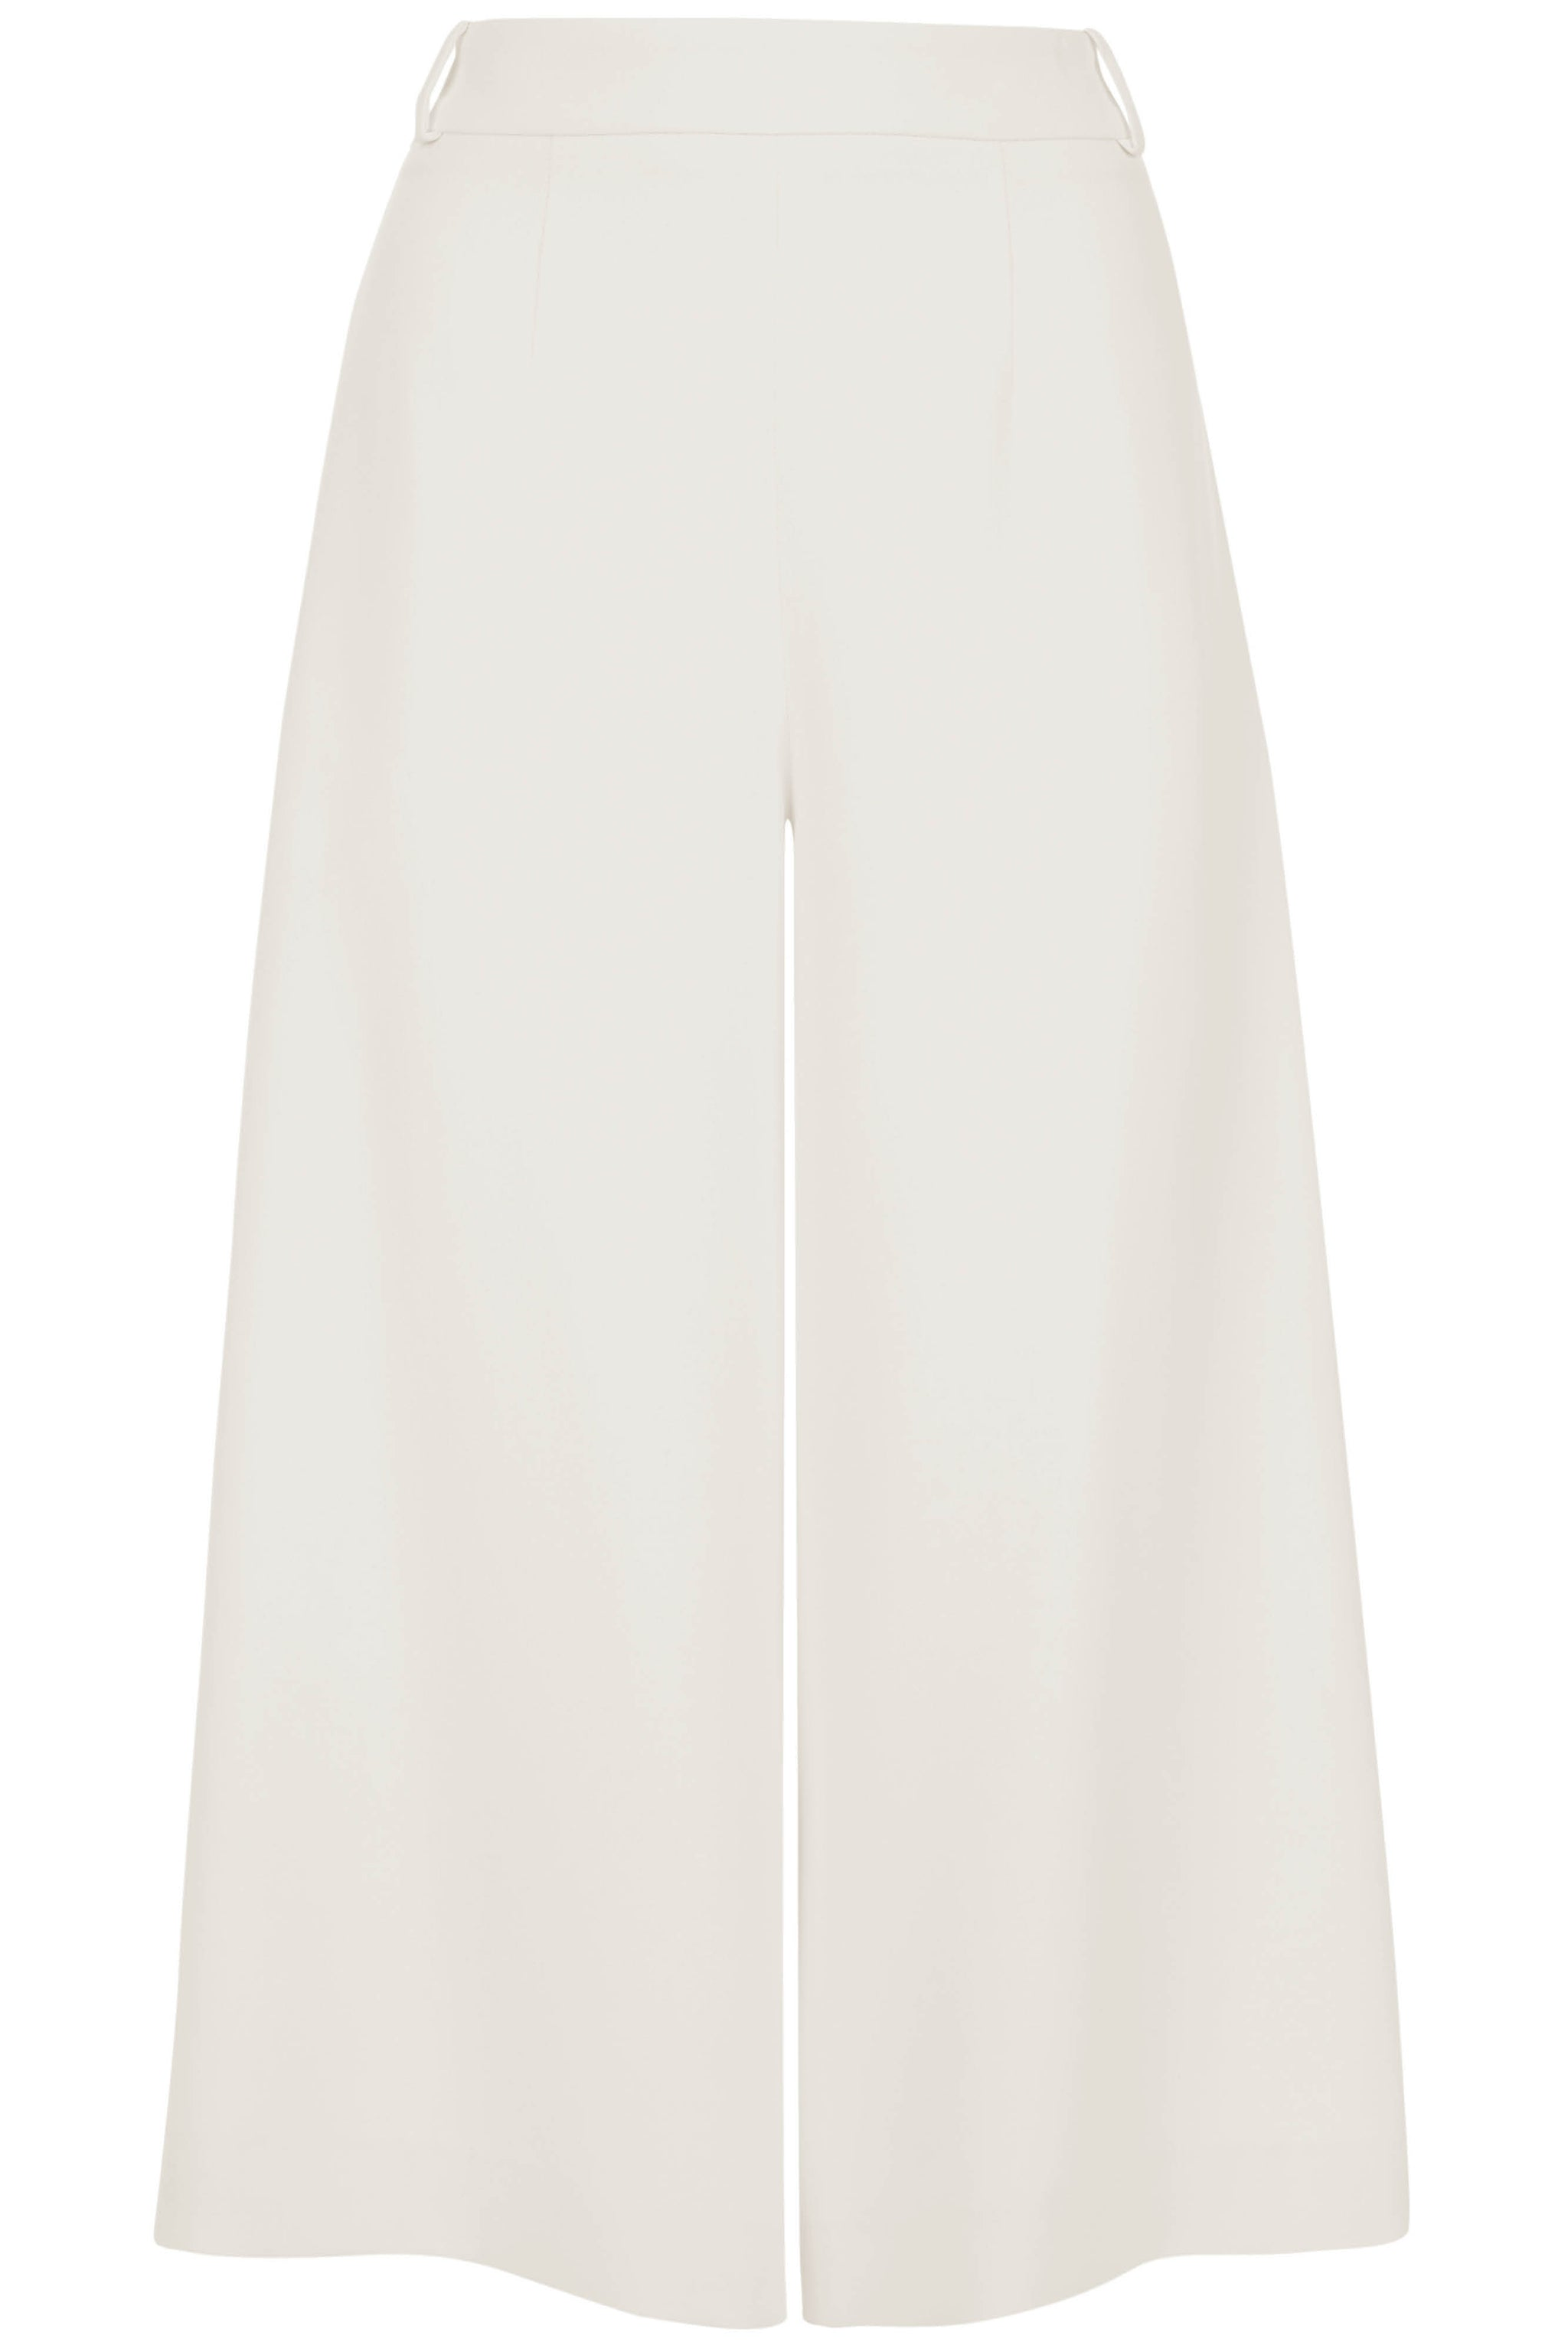 Kendle Ivory Culottes